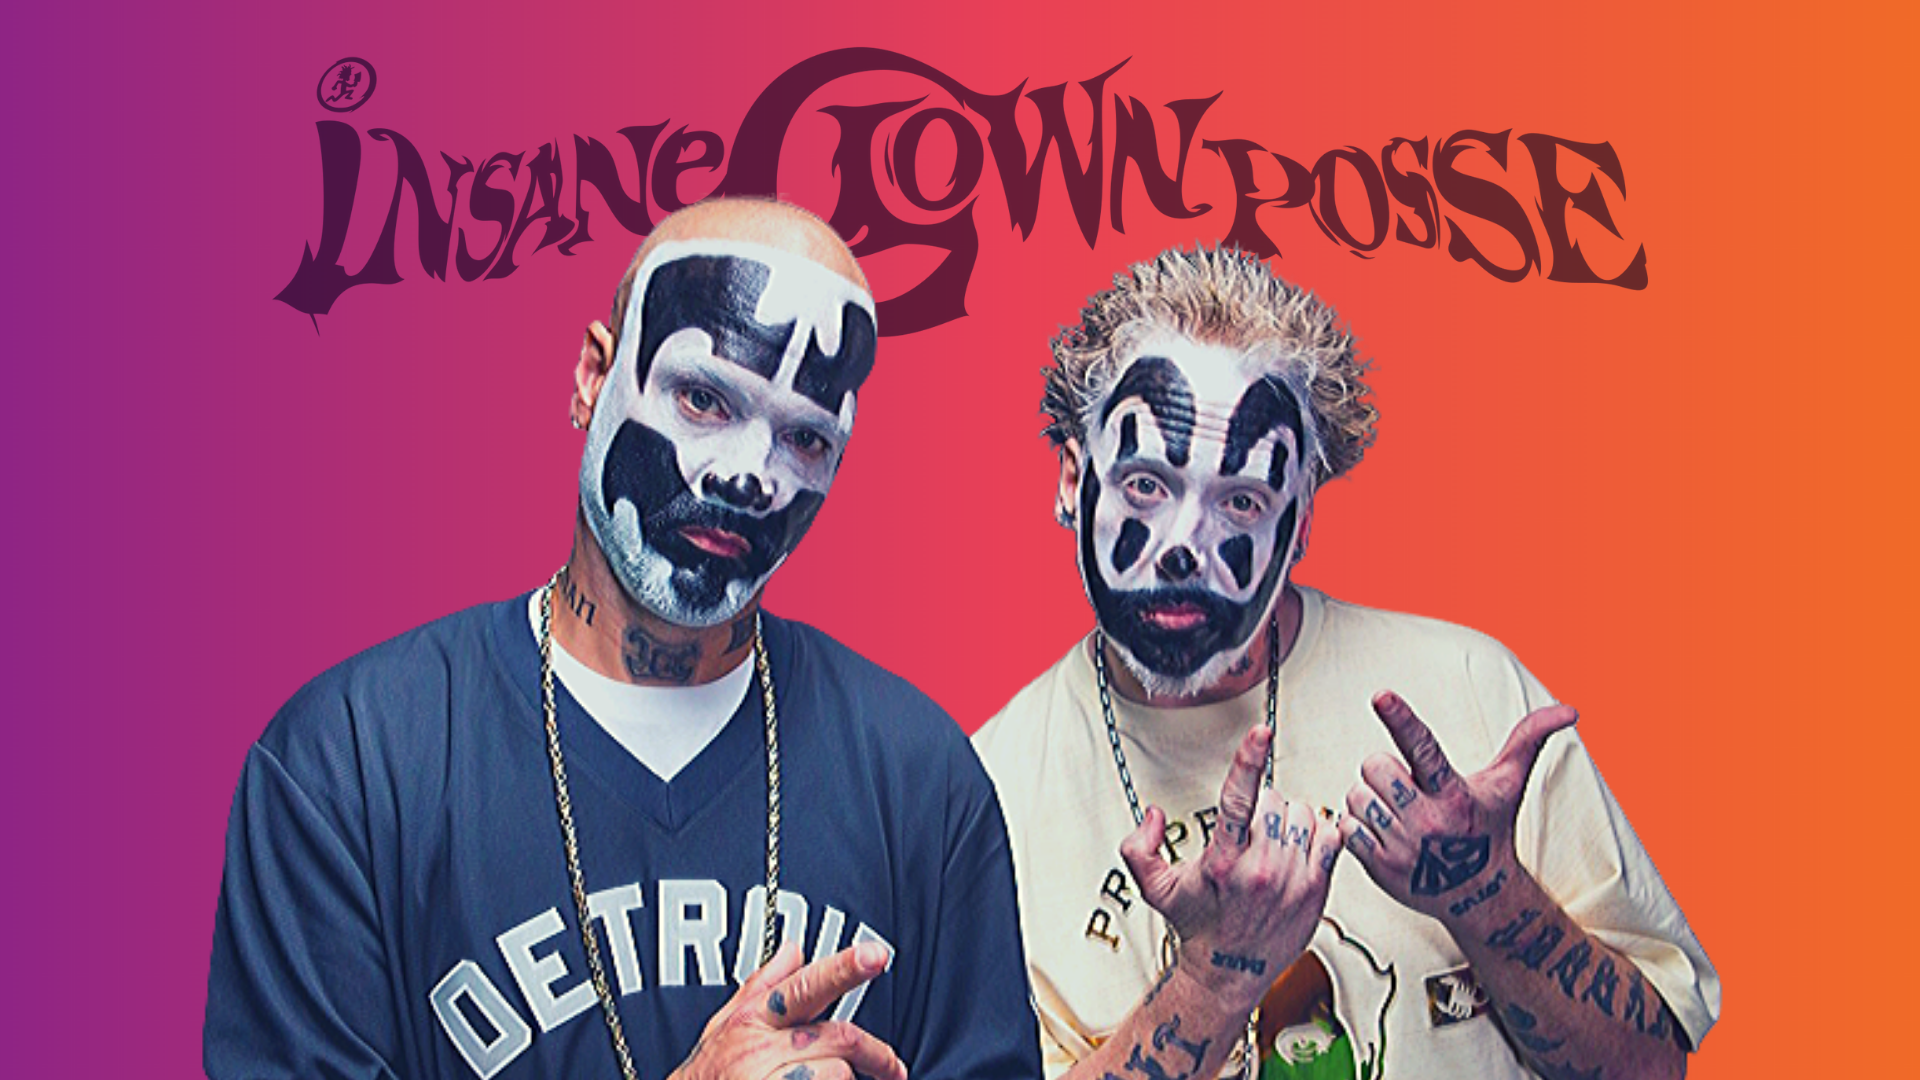 Even The Insane Clown Posse Isn't Insane Enough to Gather This year